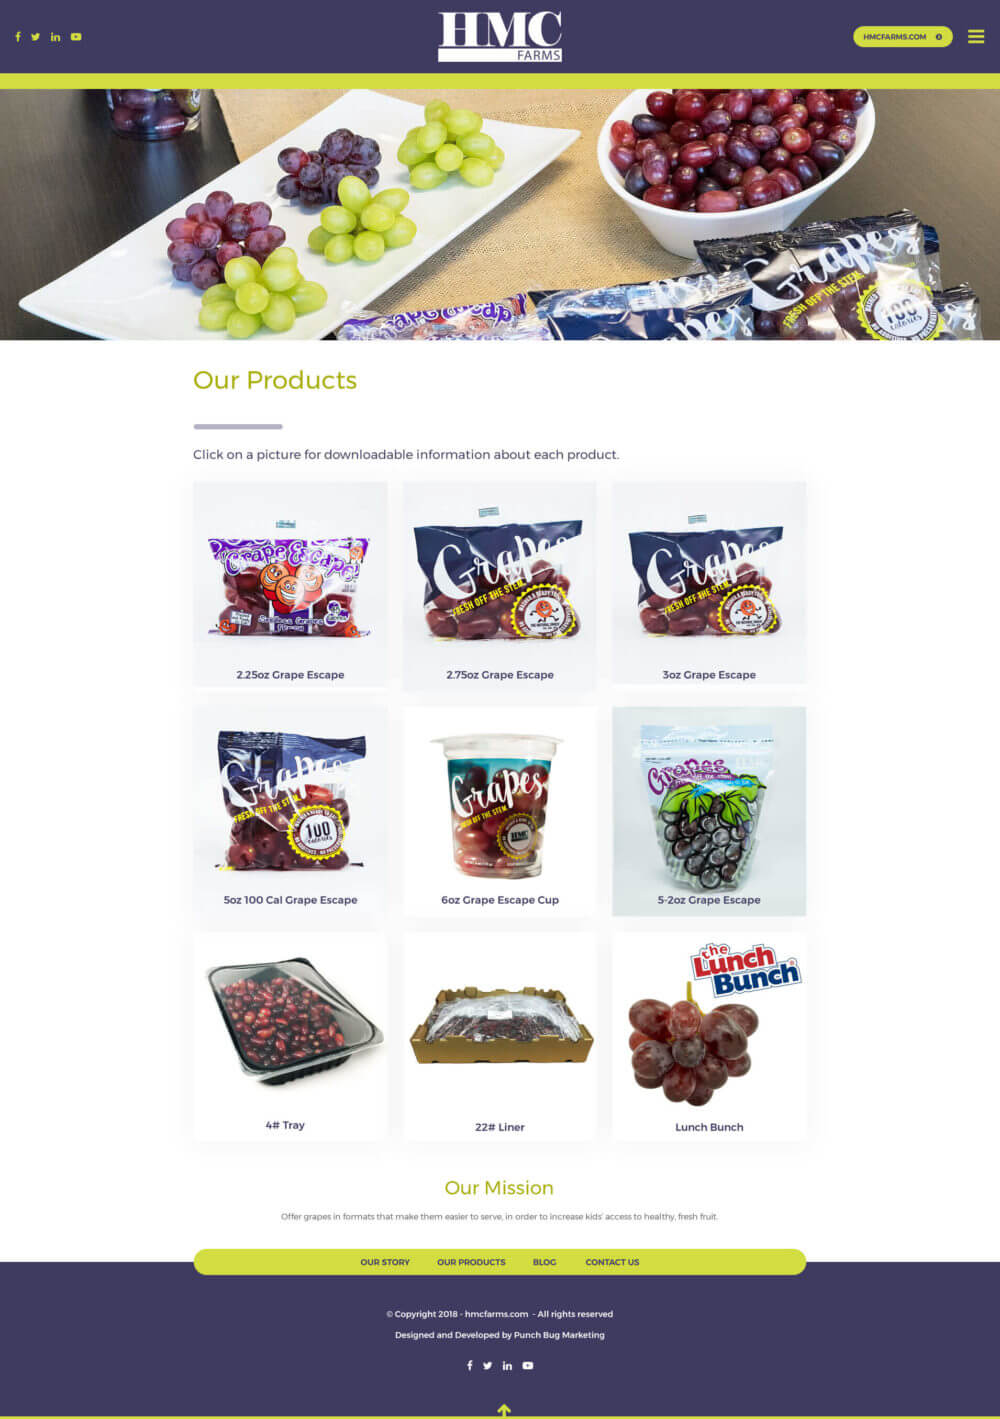 HMC Farms Grapes for Schools - Products